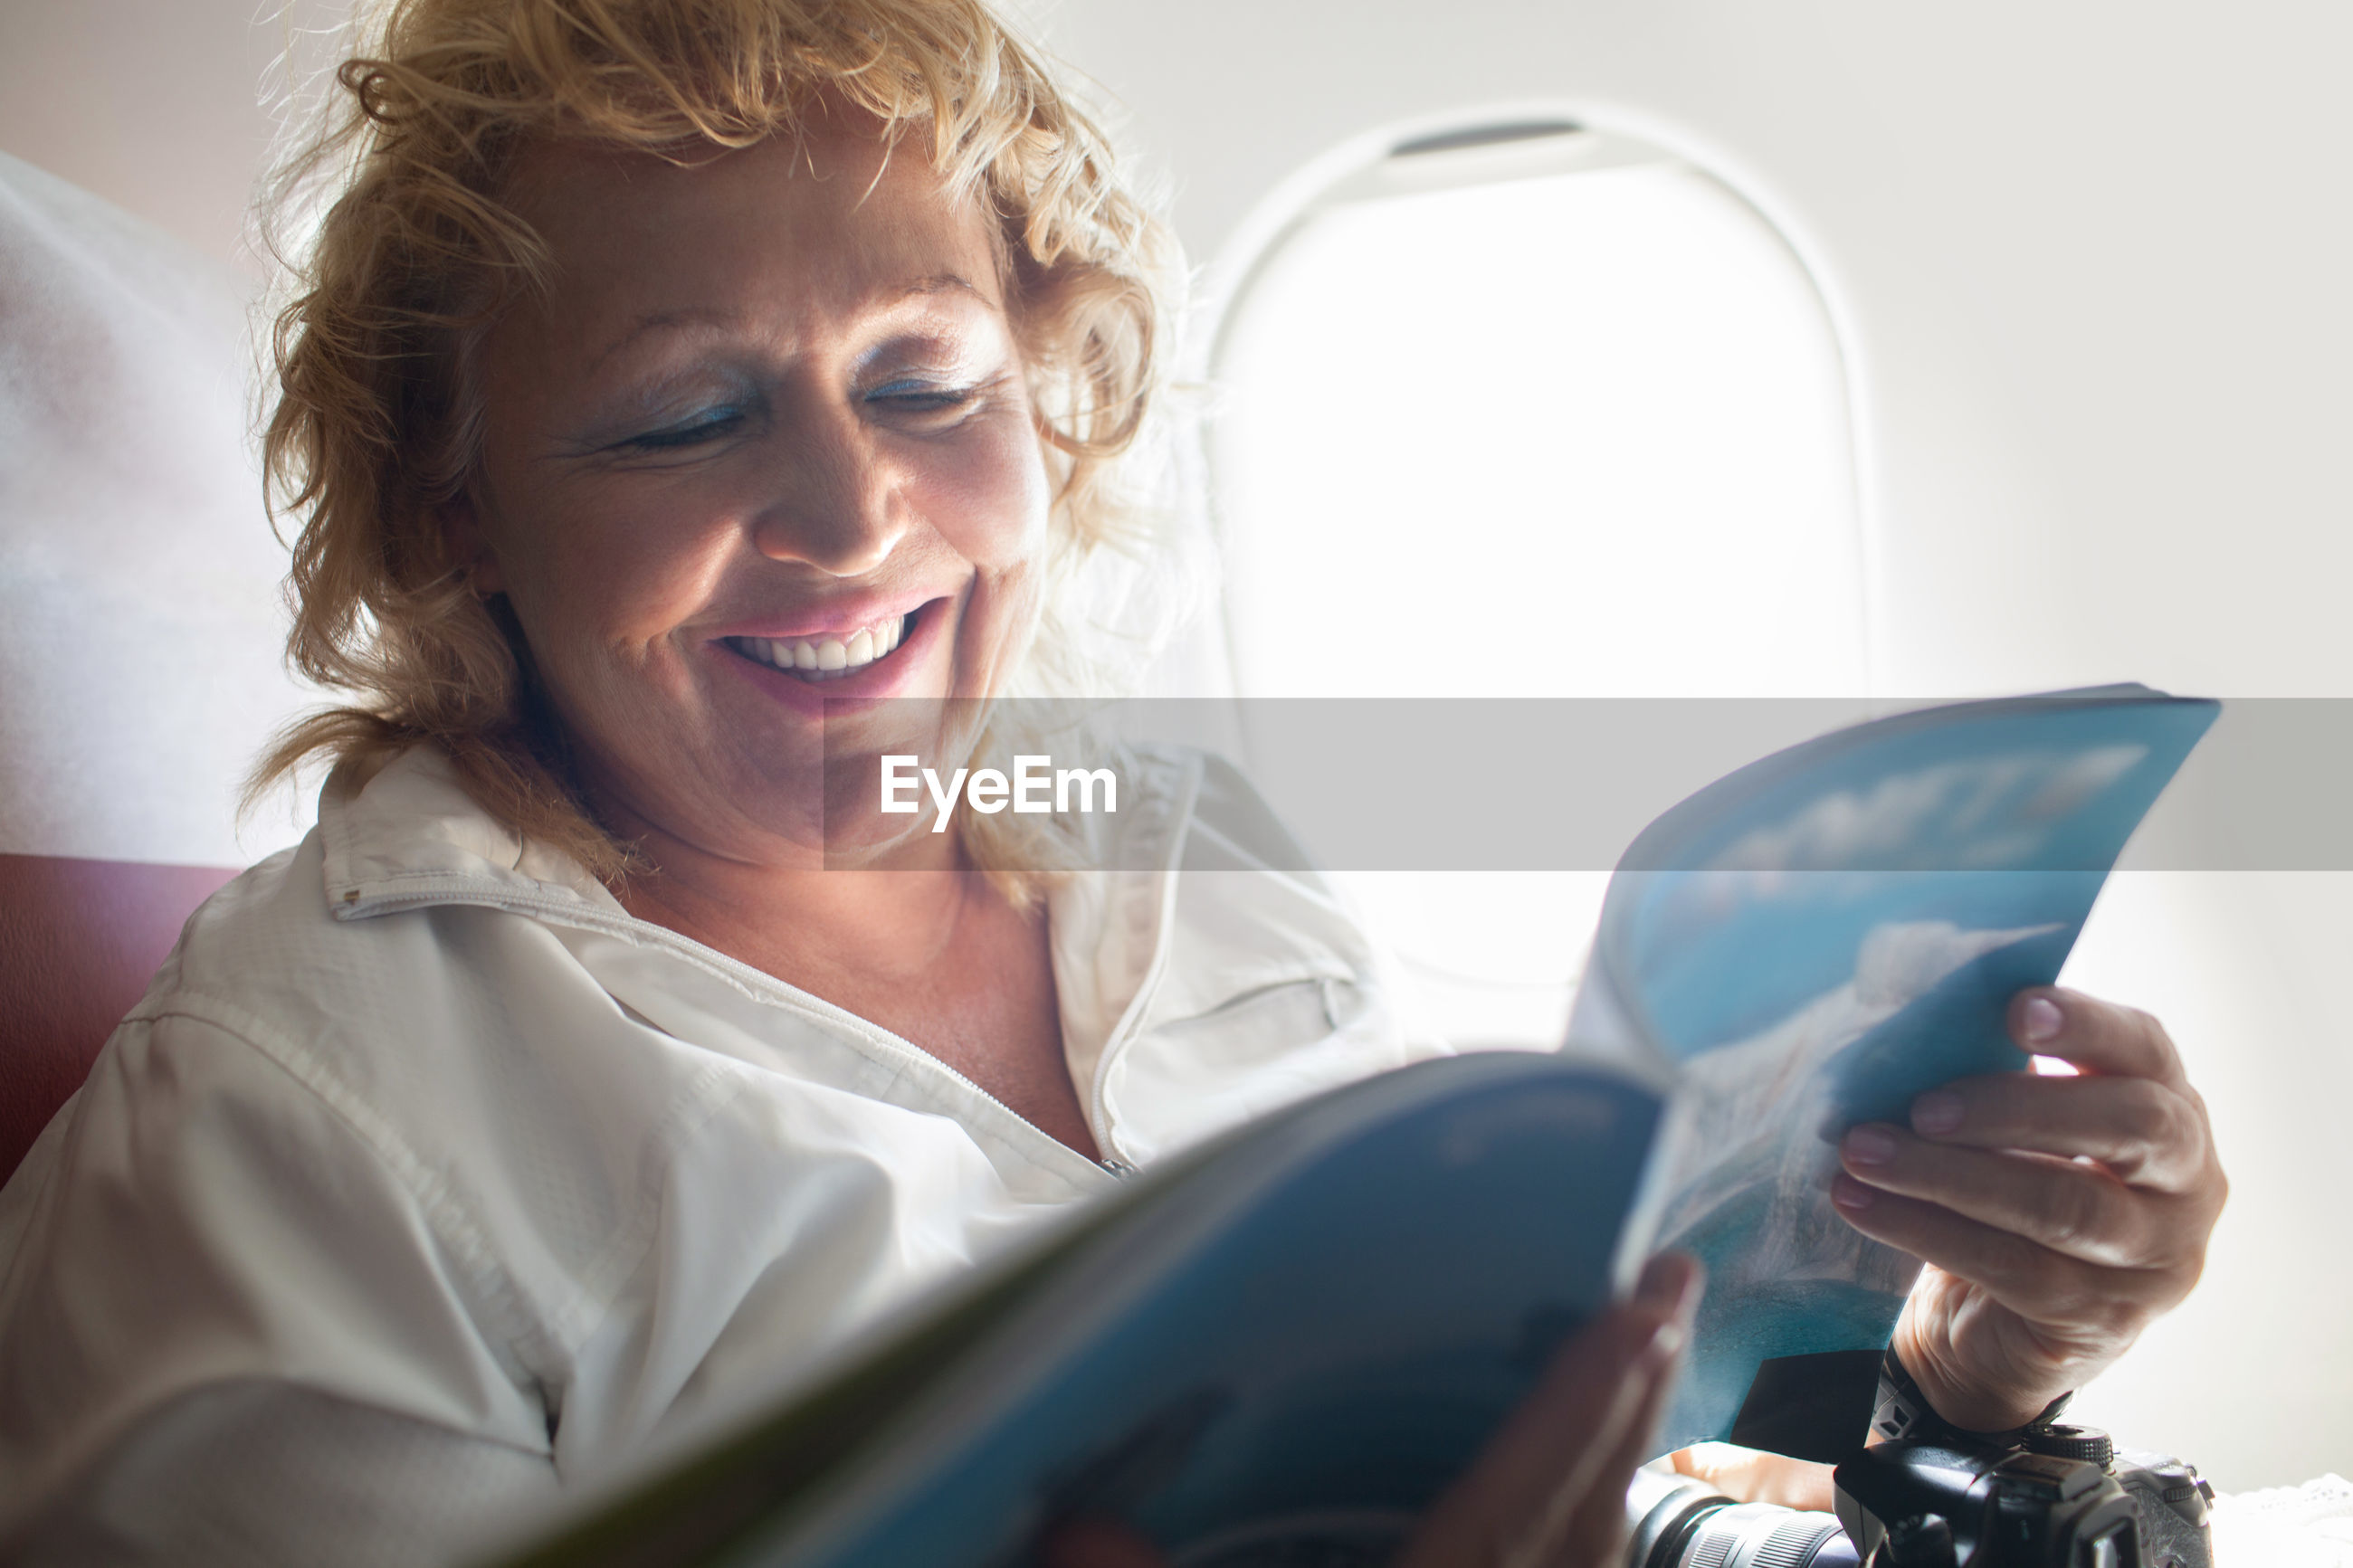 Smiling woman reading magazine while sitting in airplane